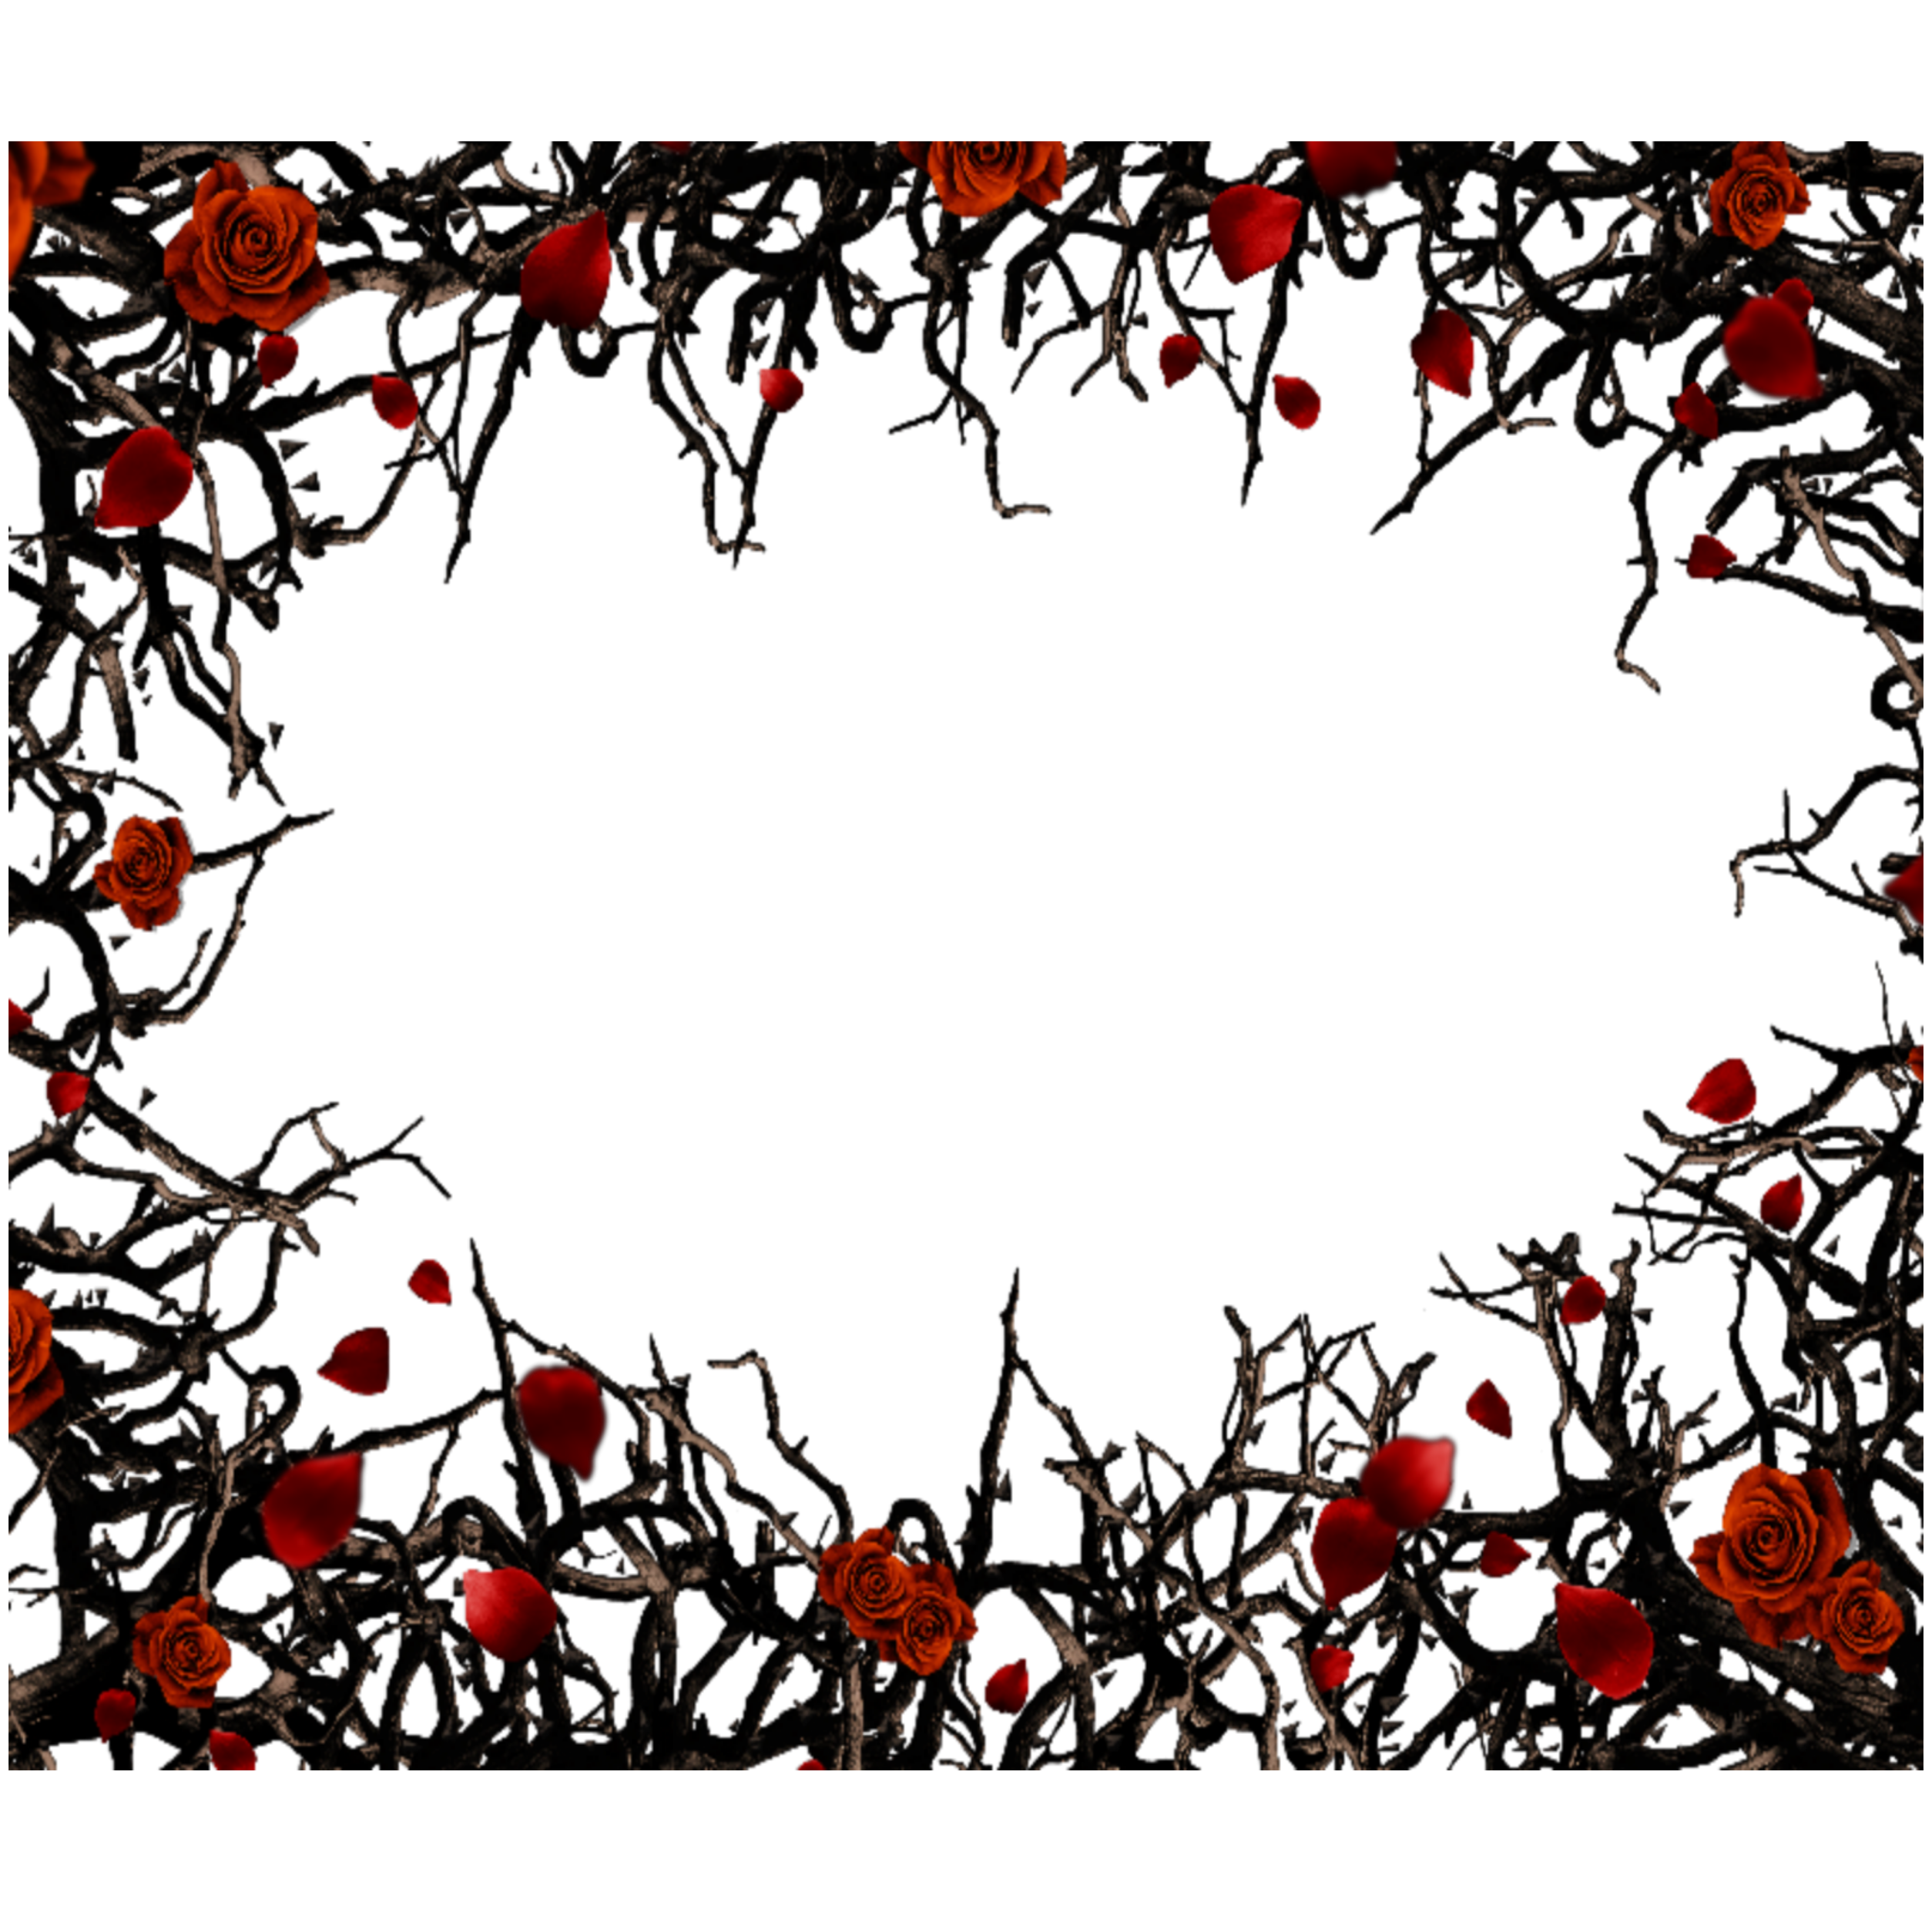 Freetoedit Mq Red Black Roses Gothic Frame Frames Border Borders Remixit Gothic Pictures Framed Tattoo Book Of Shadows